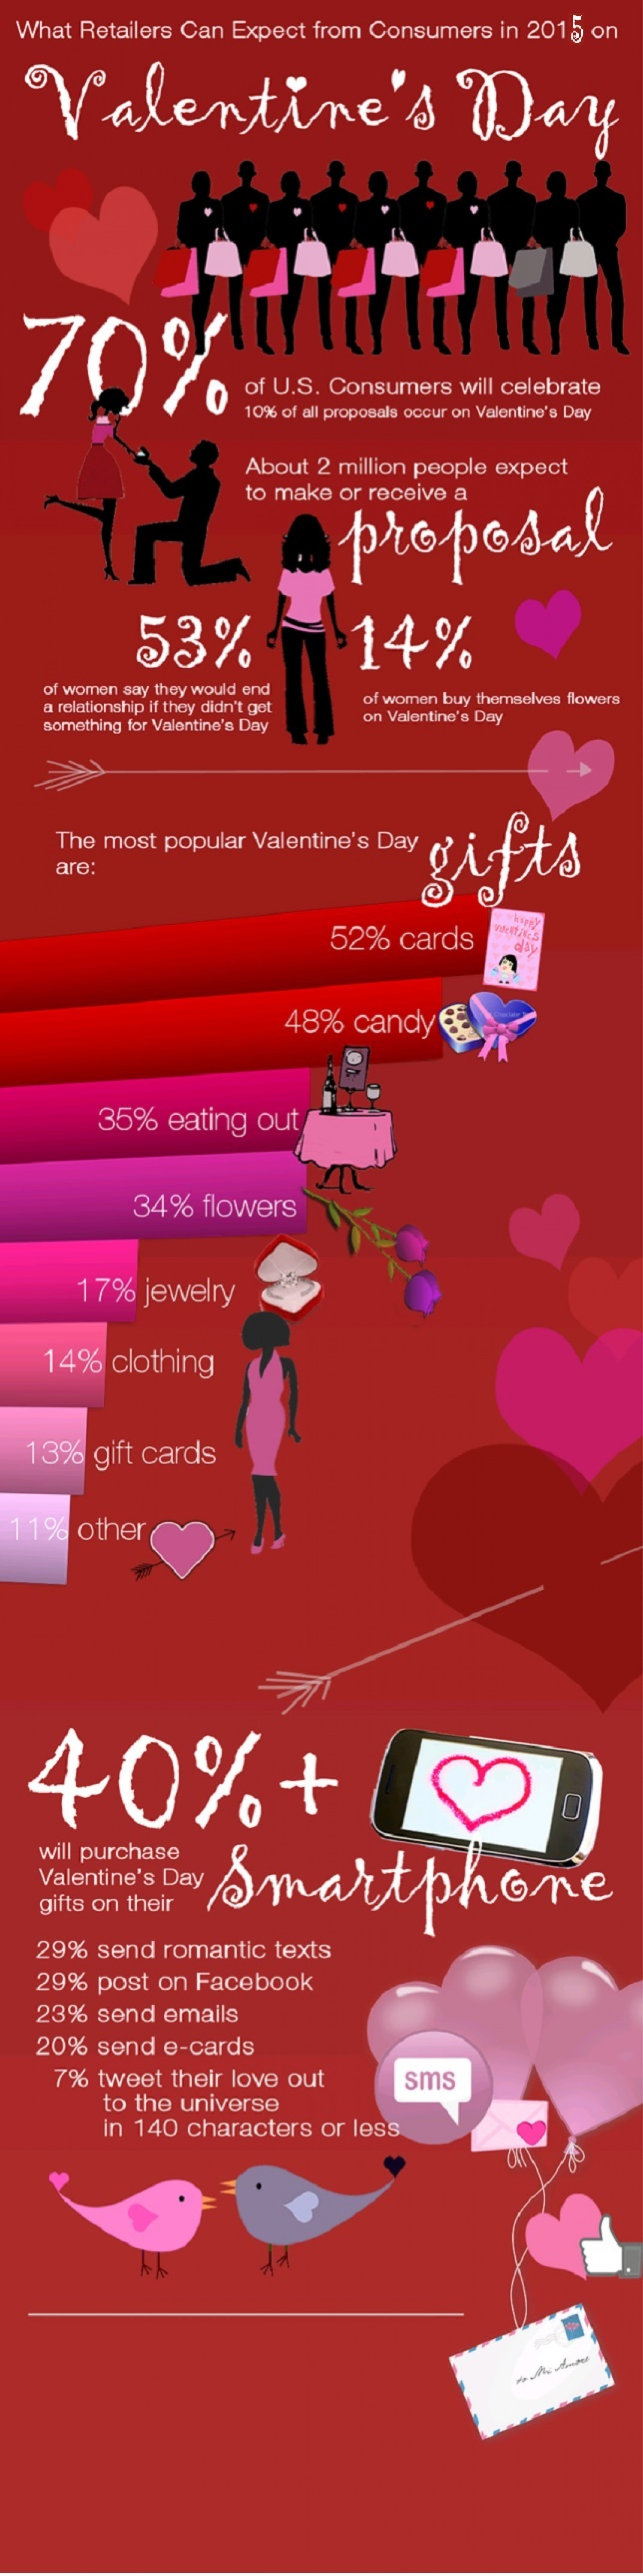 2015 Valentines Day Marketing Ideas Infographic